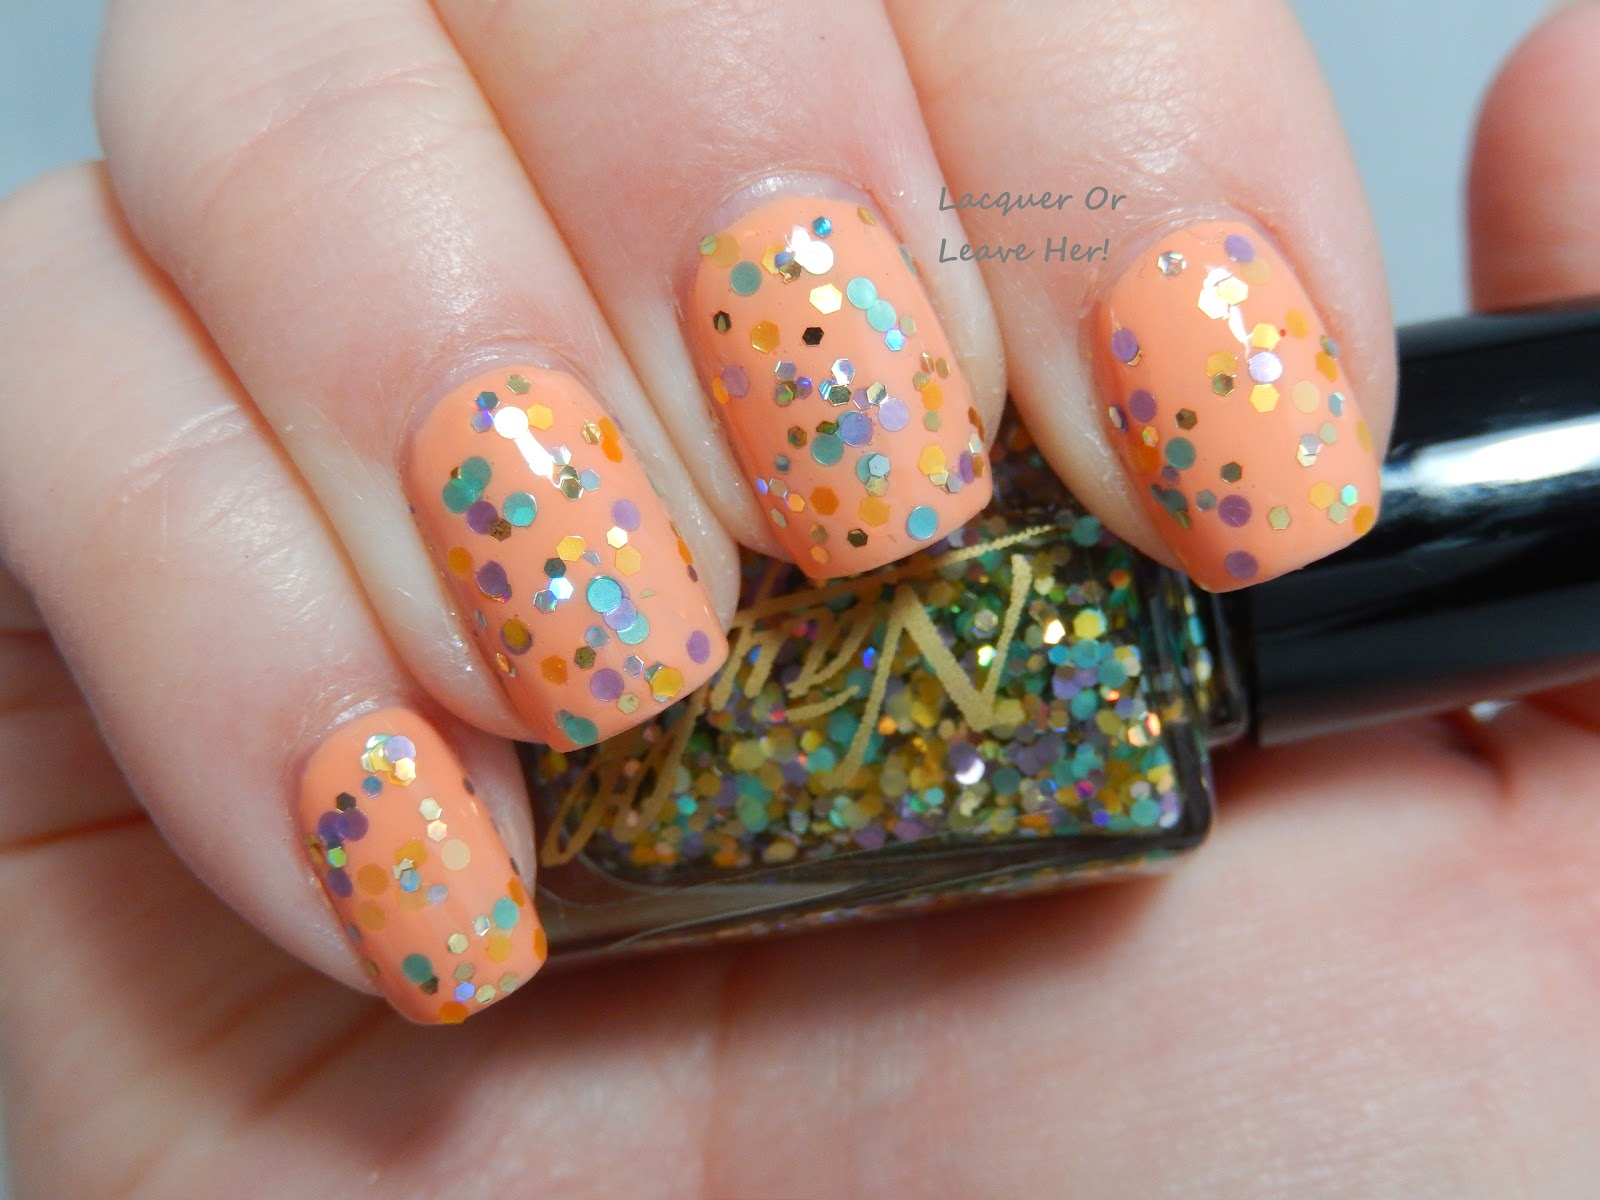 Nayll Crystal Lagoon over Zoya Cole